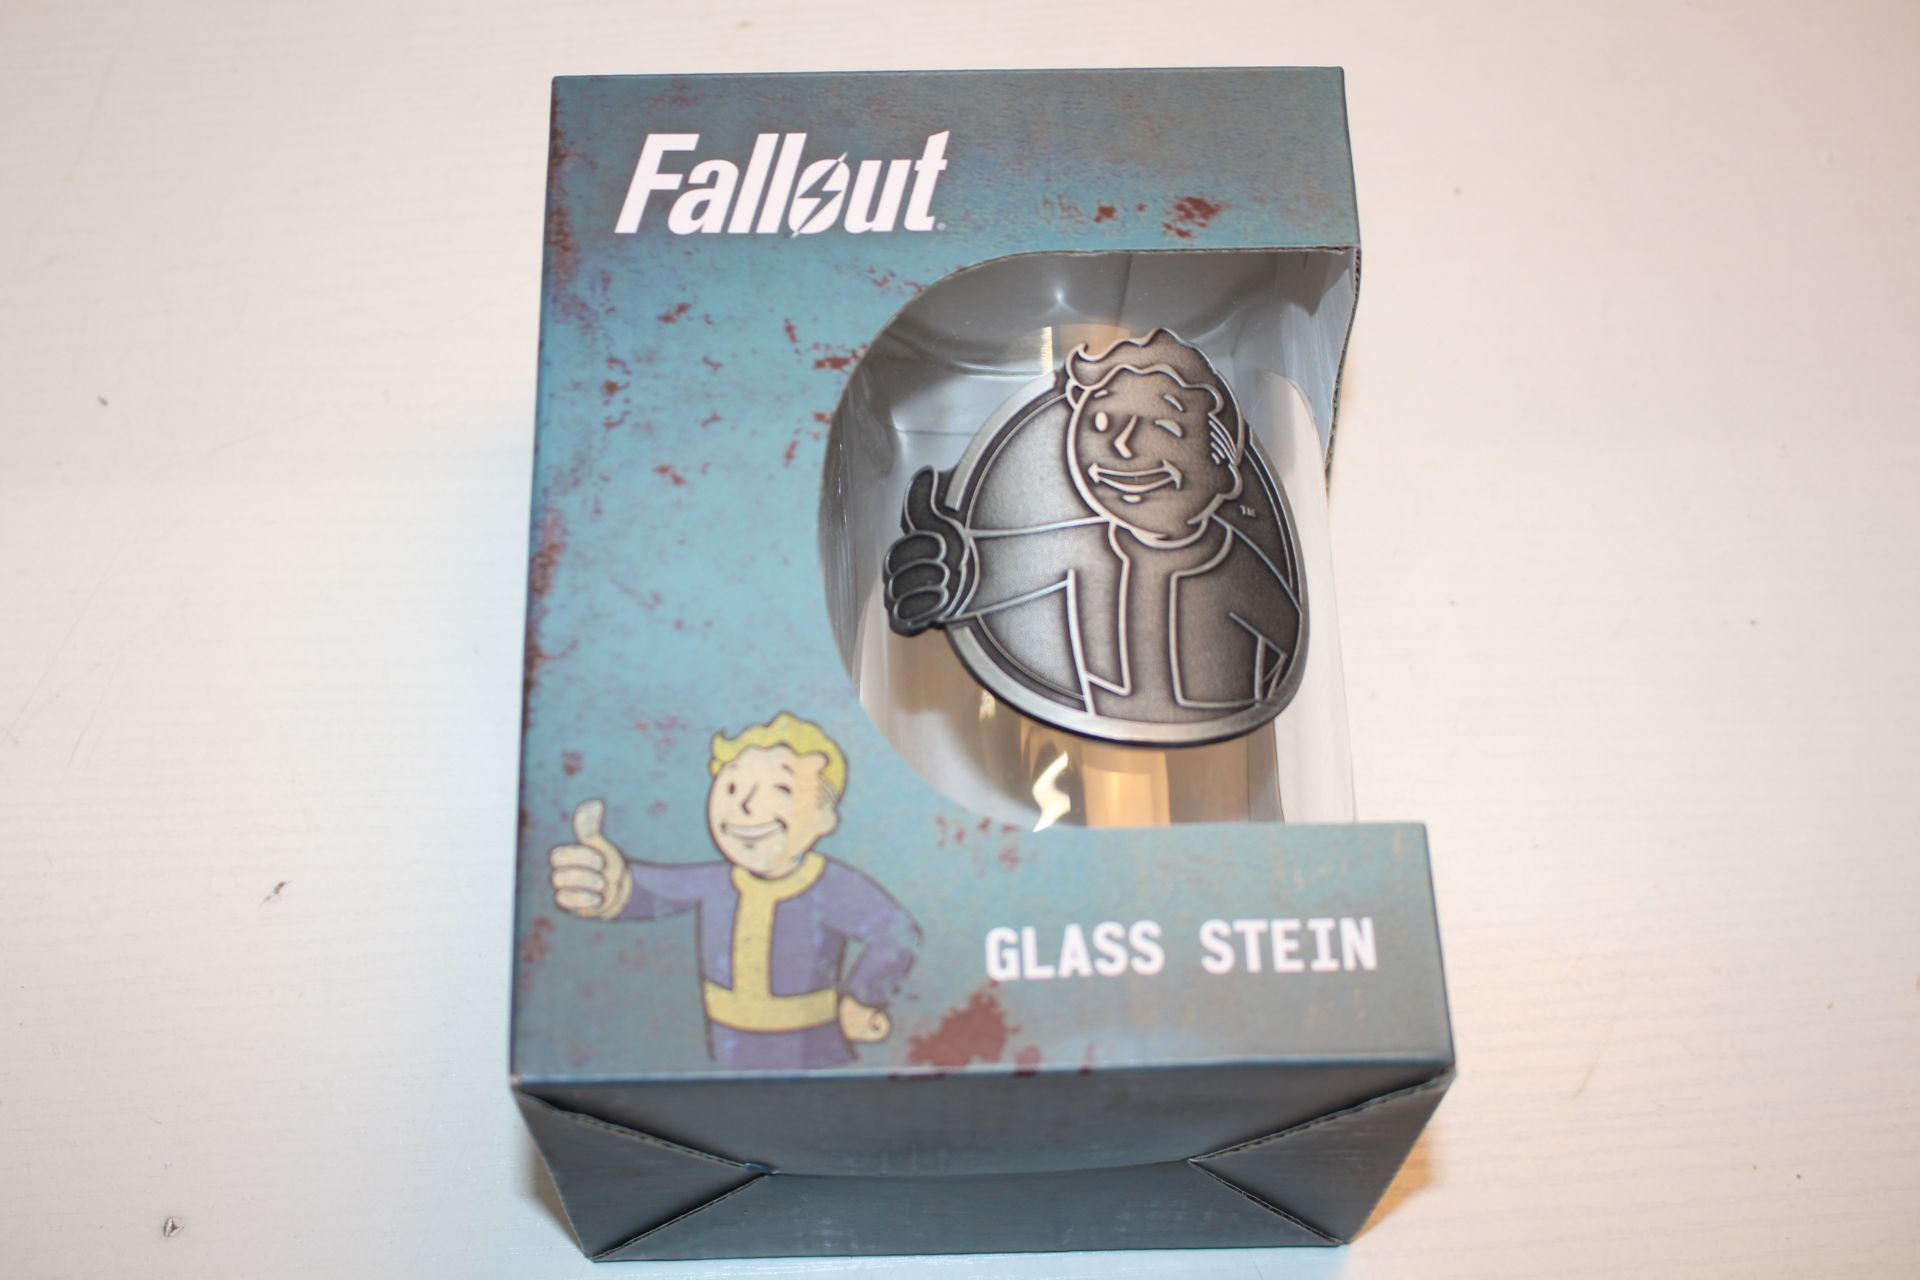 BOXED FALLOUT GLASS TUMBLERCondition ReportAppraisal Available on Request- All Items are Unchecked/